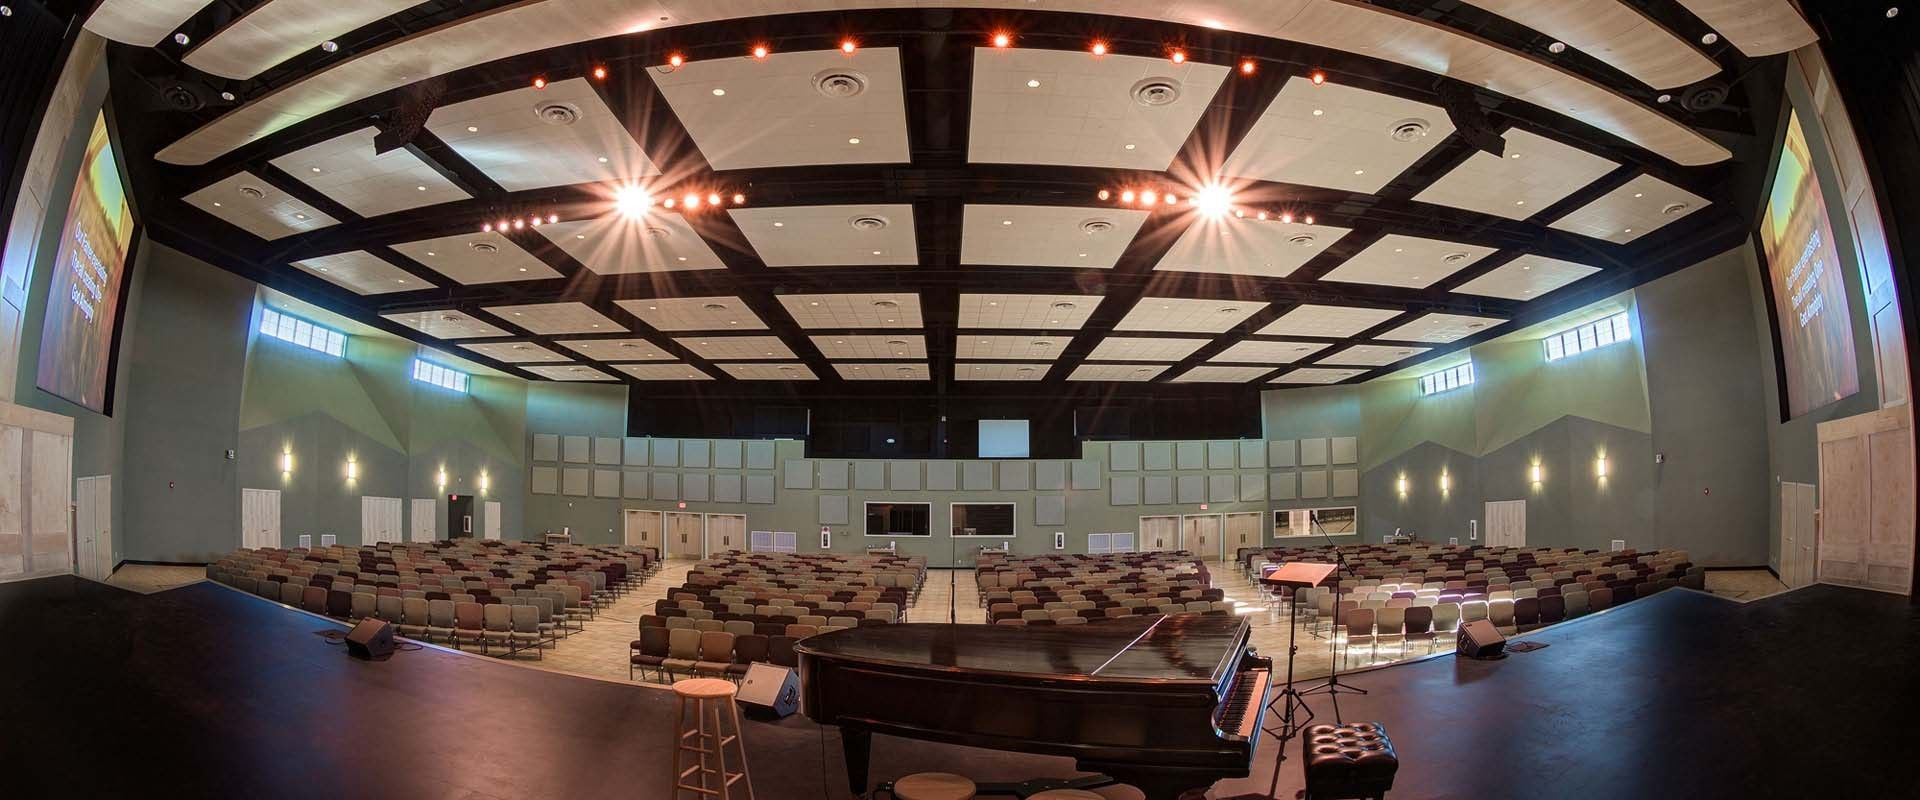 1000 seat contemporary worship space 1000 seat